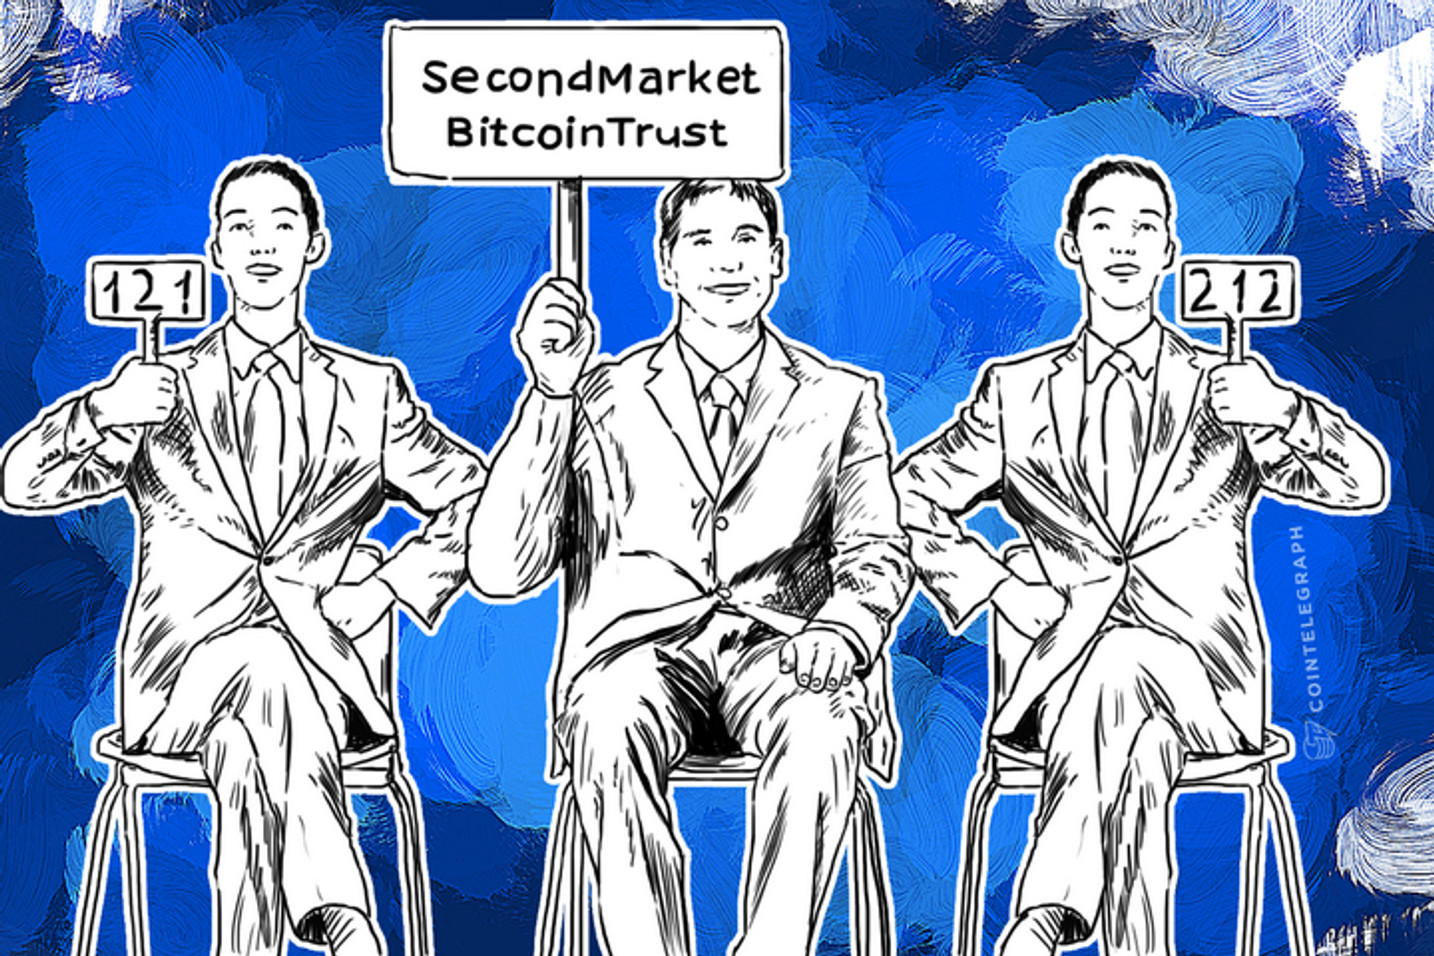 Bitcoin Trust Wins Majority of US Marshal Auction, Tim Draper Gets the Rest